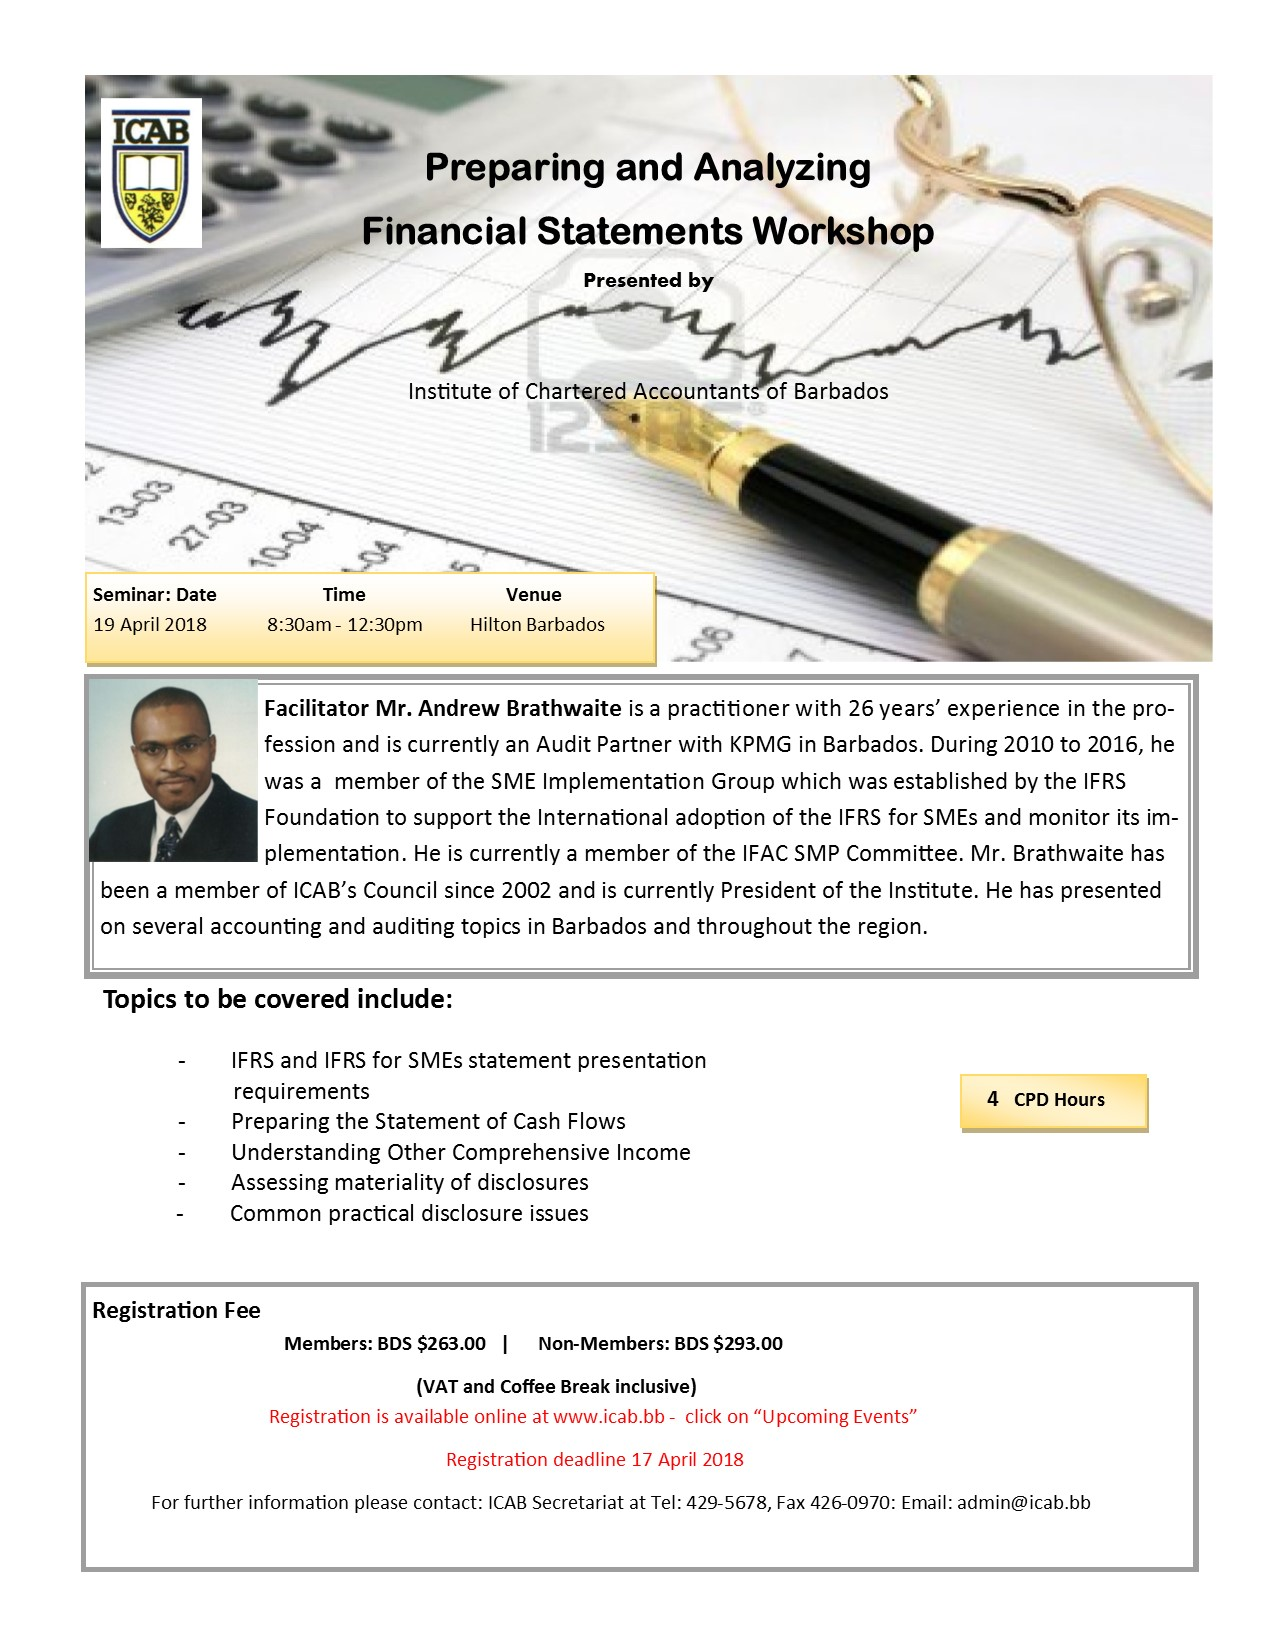 PREPARING AND ANALYZING FINANCIAL STATEMENTS